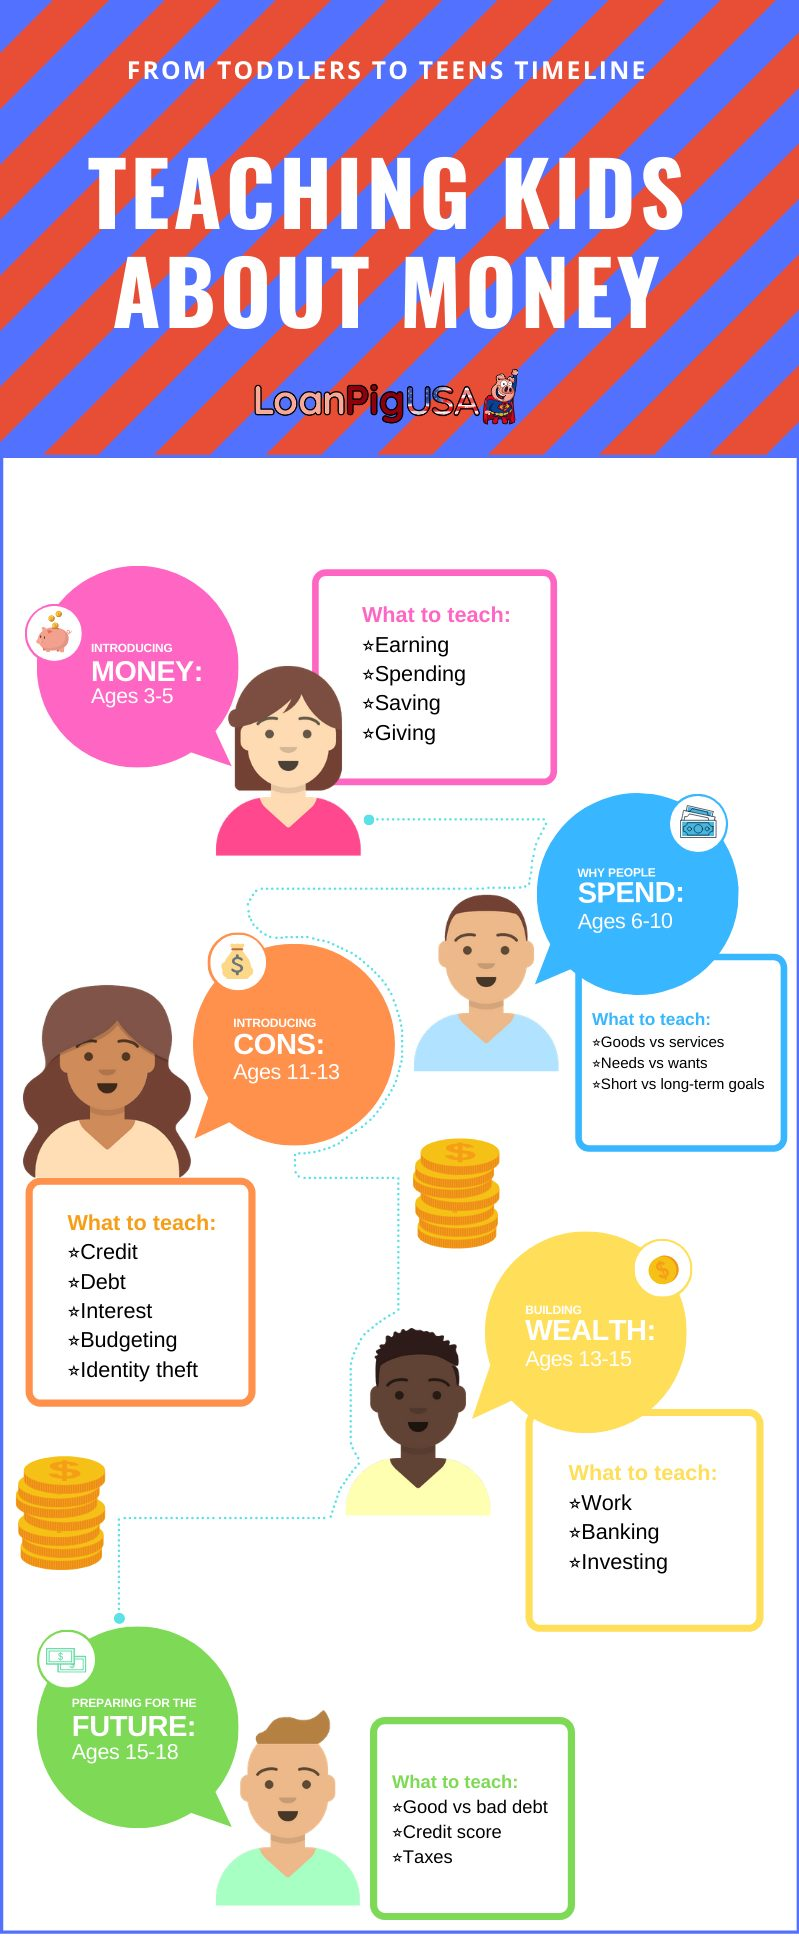 teaching kids about money | loanpigusa infographic